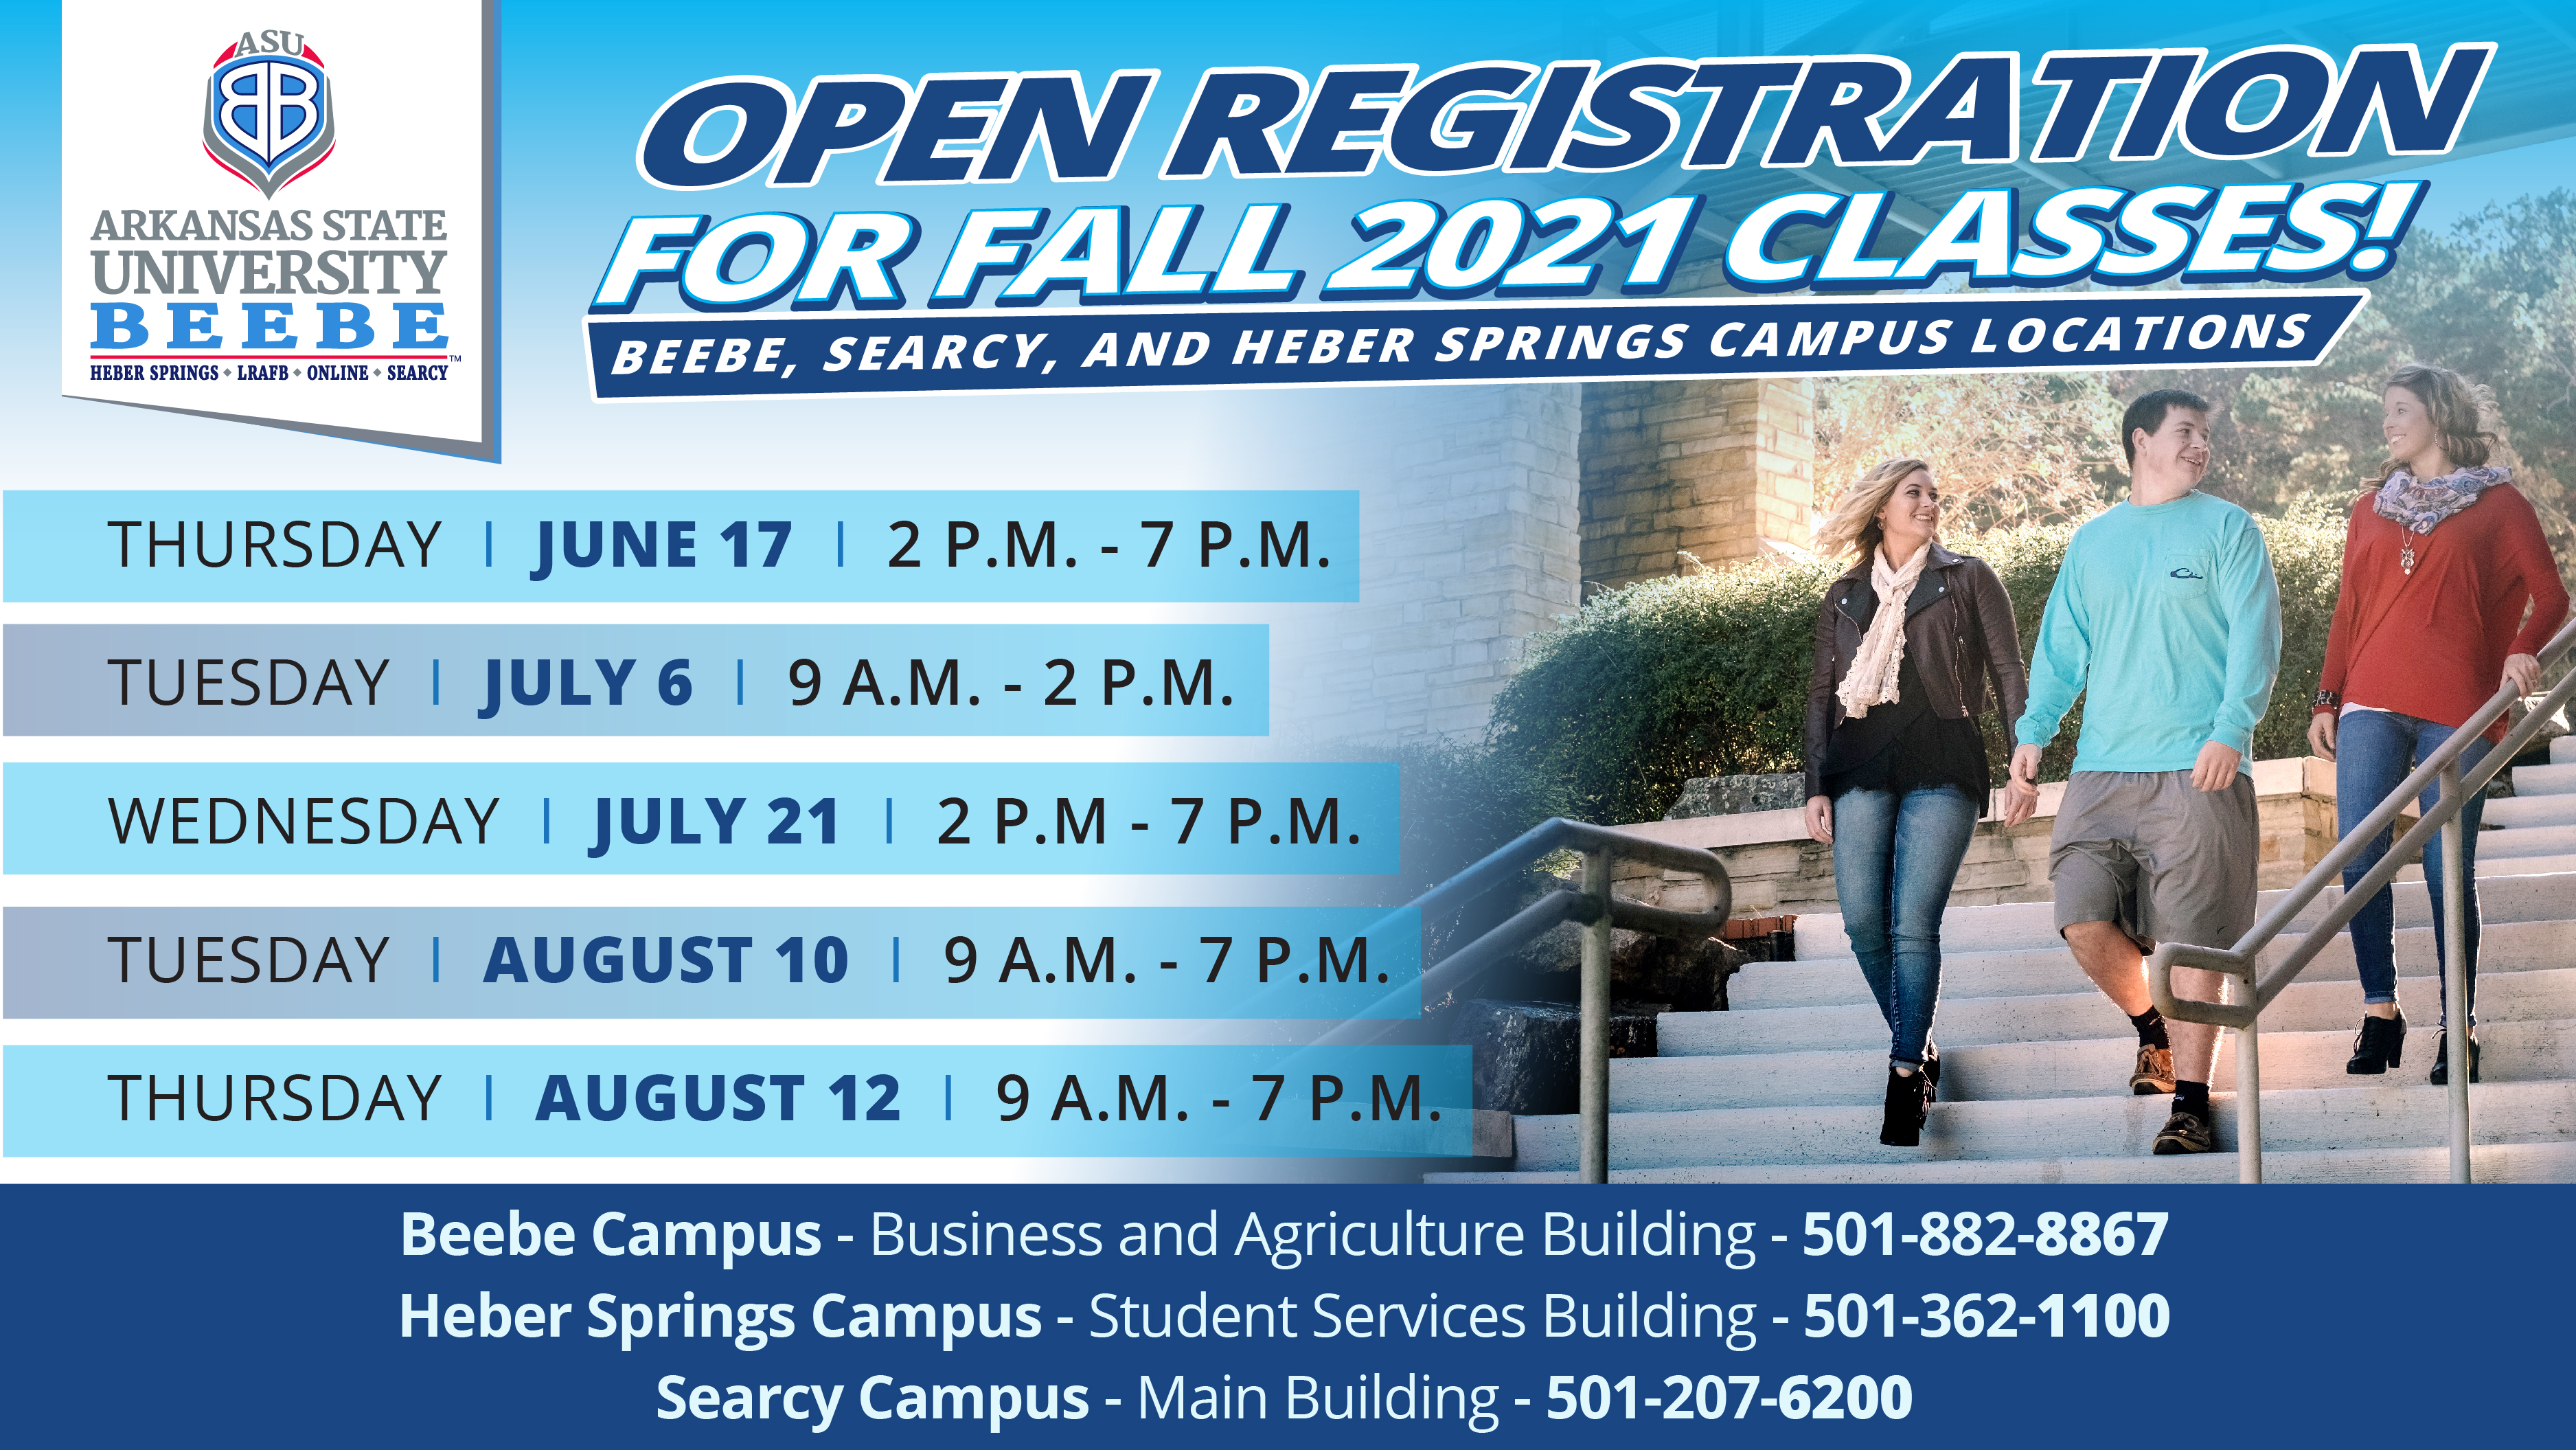 ASU-Beebe Fall 2021 Open Registration Date graphic